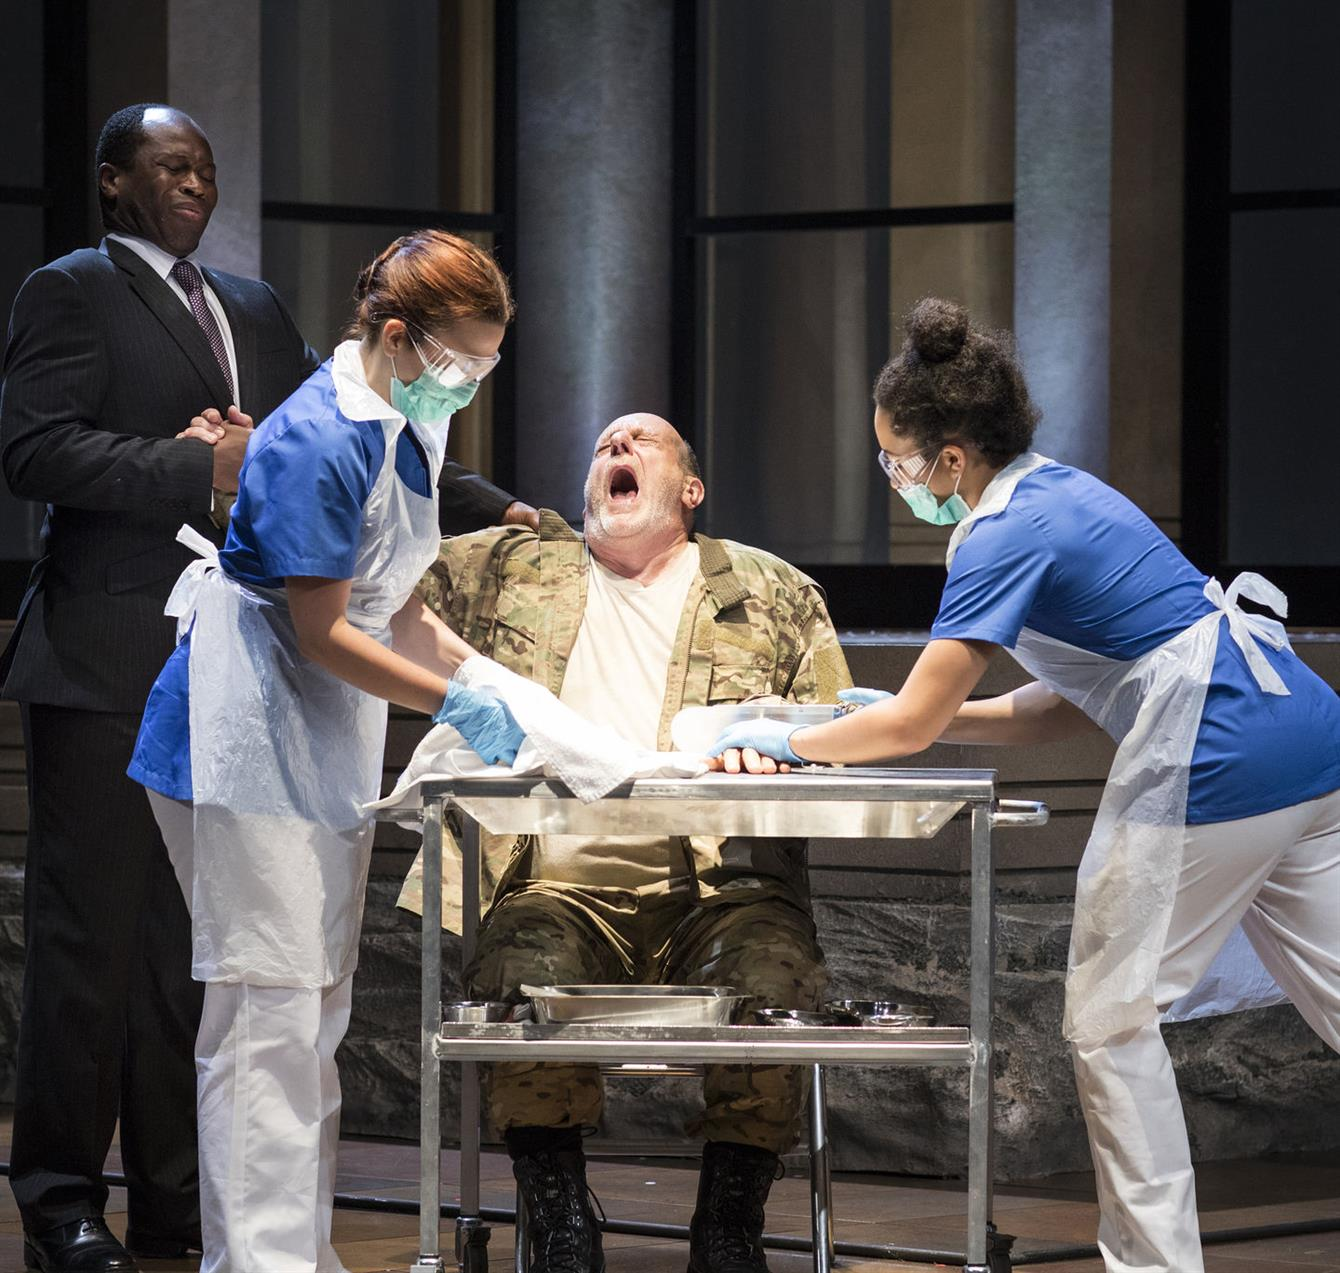 a review of the life of shakespearean titus andronicus Review: titus andronicus at the barbican december 7 - january 19 the bizarreness takes over from the brutality: blanche mcintyre's production can't balance the horror and the humour of shakespeare's bloodbath.